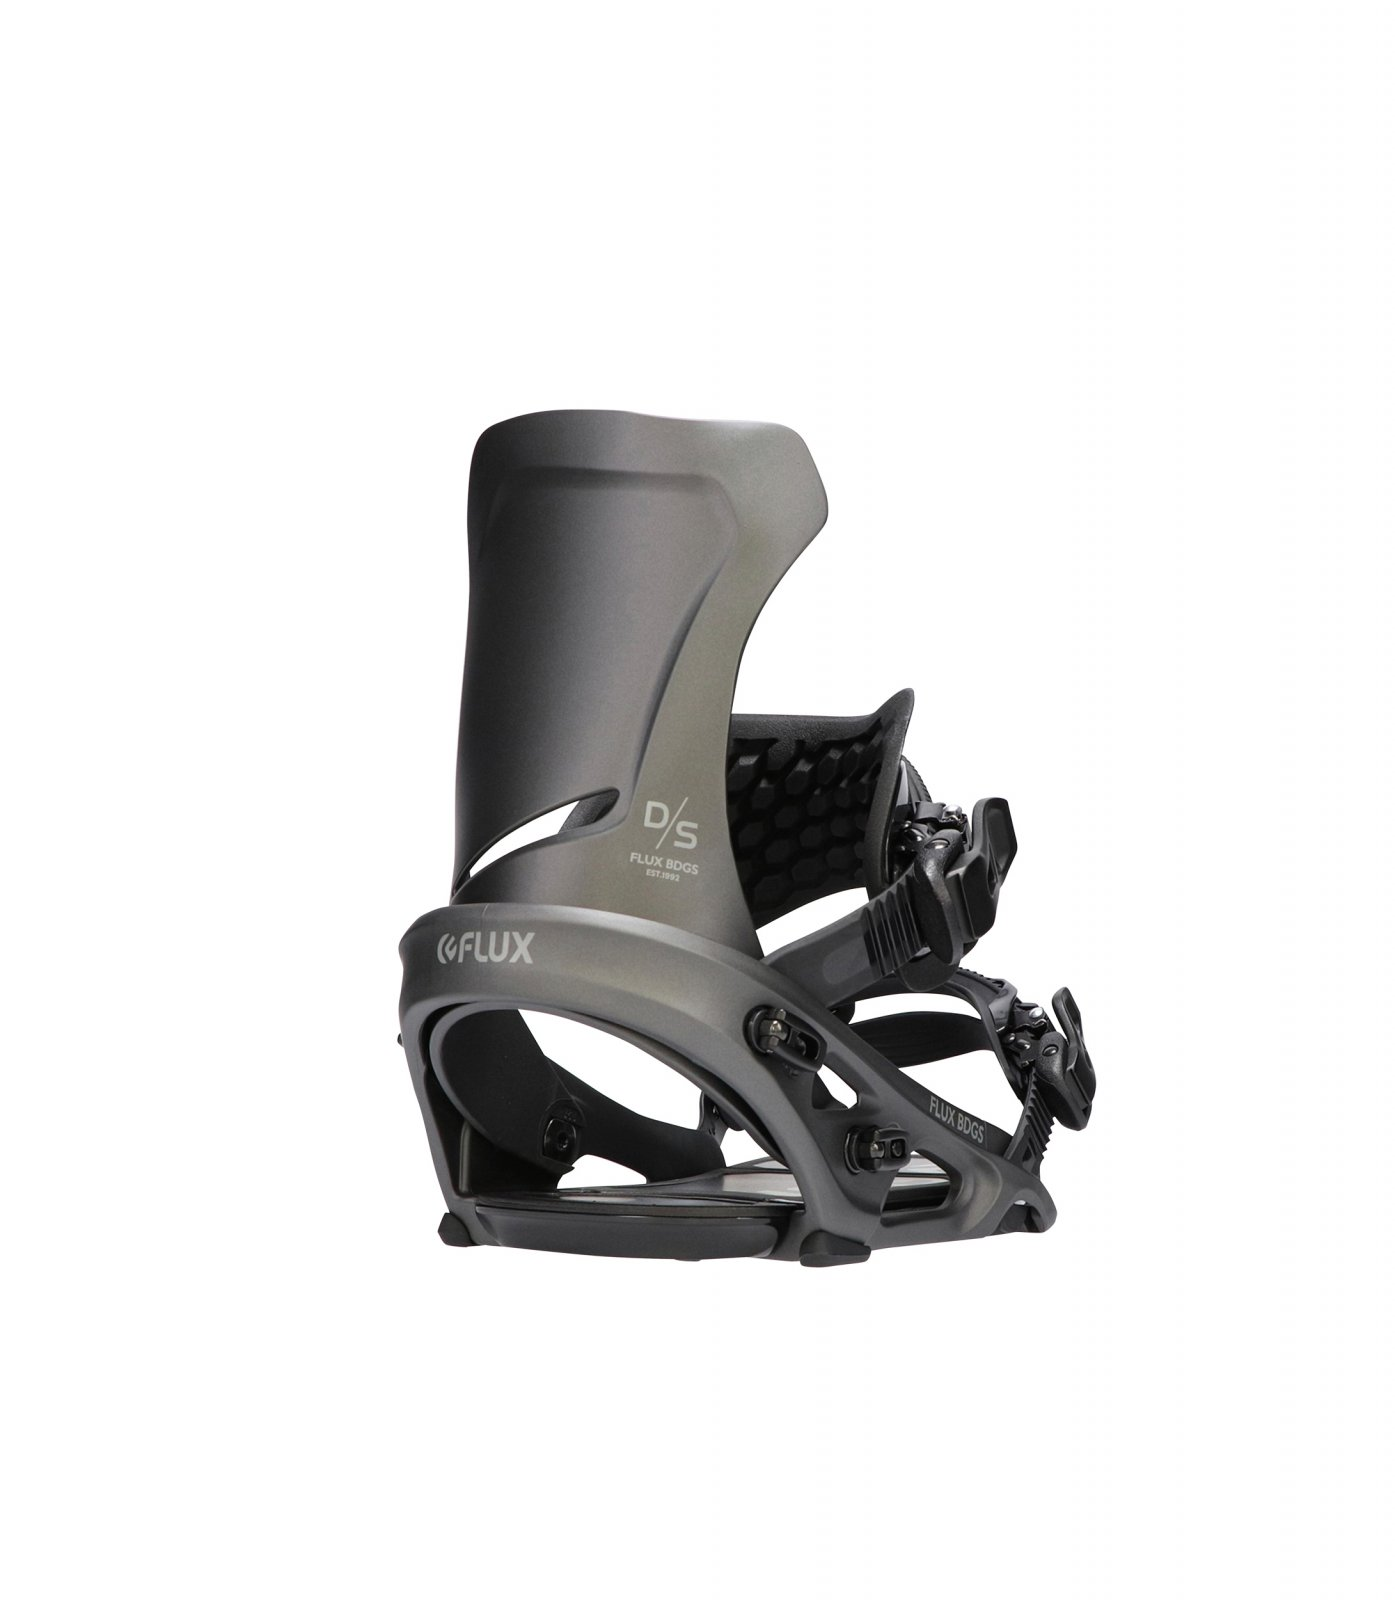 Flux DS Snowboard Bindings 2021